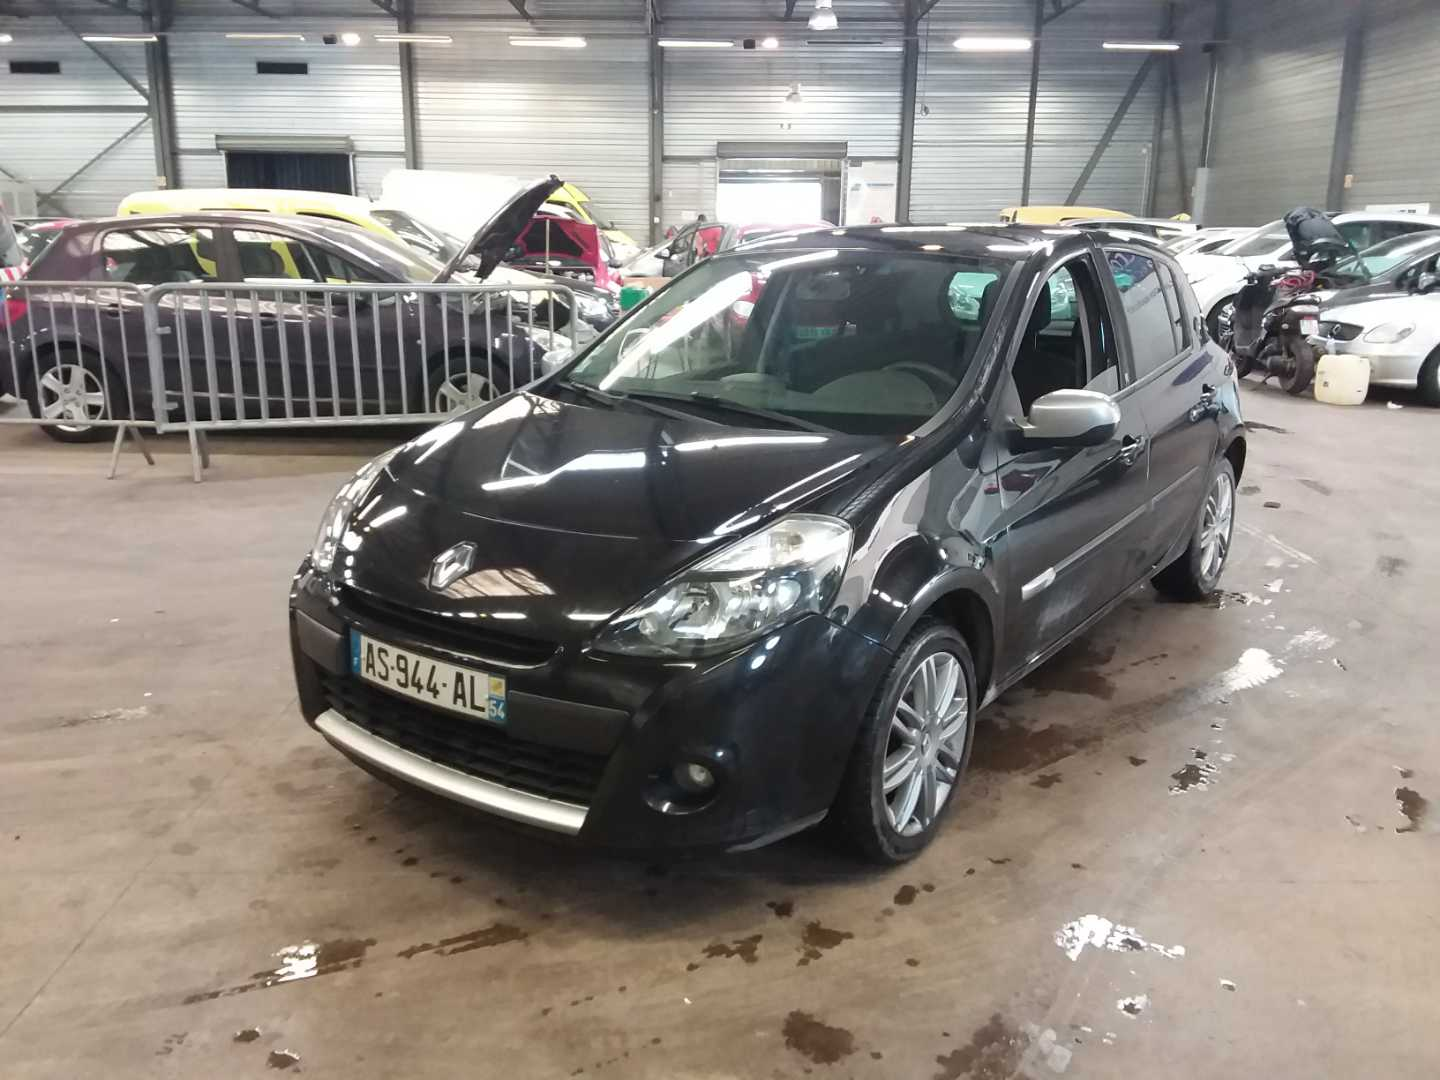 renault clio iii clio iii dci 75 eco2 20th euro 5 alcopa auction. Black Bedroom Furniture Sets. Home Design Ideas